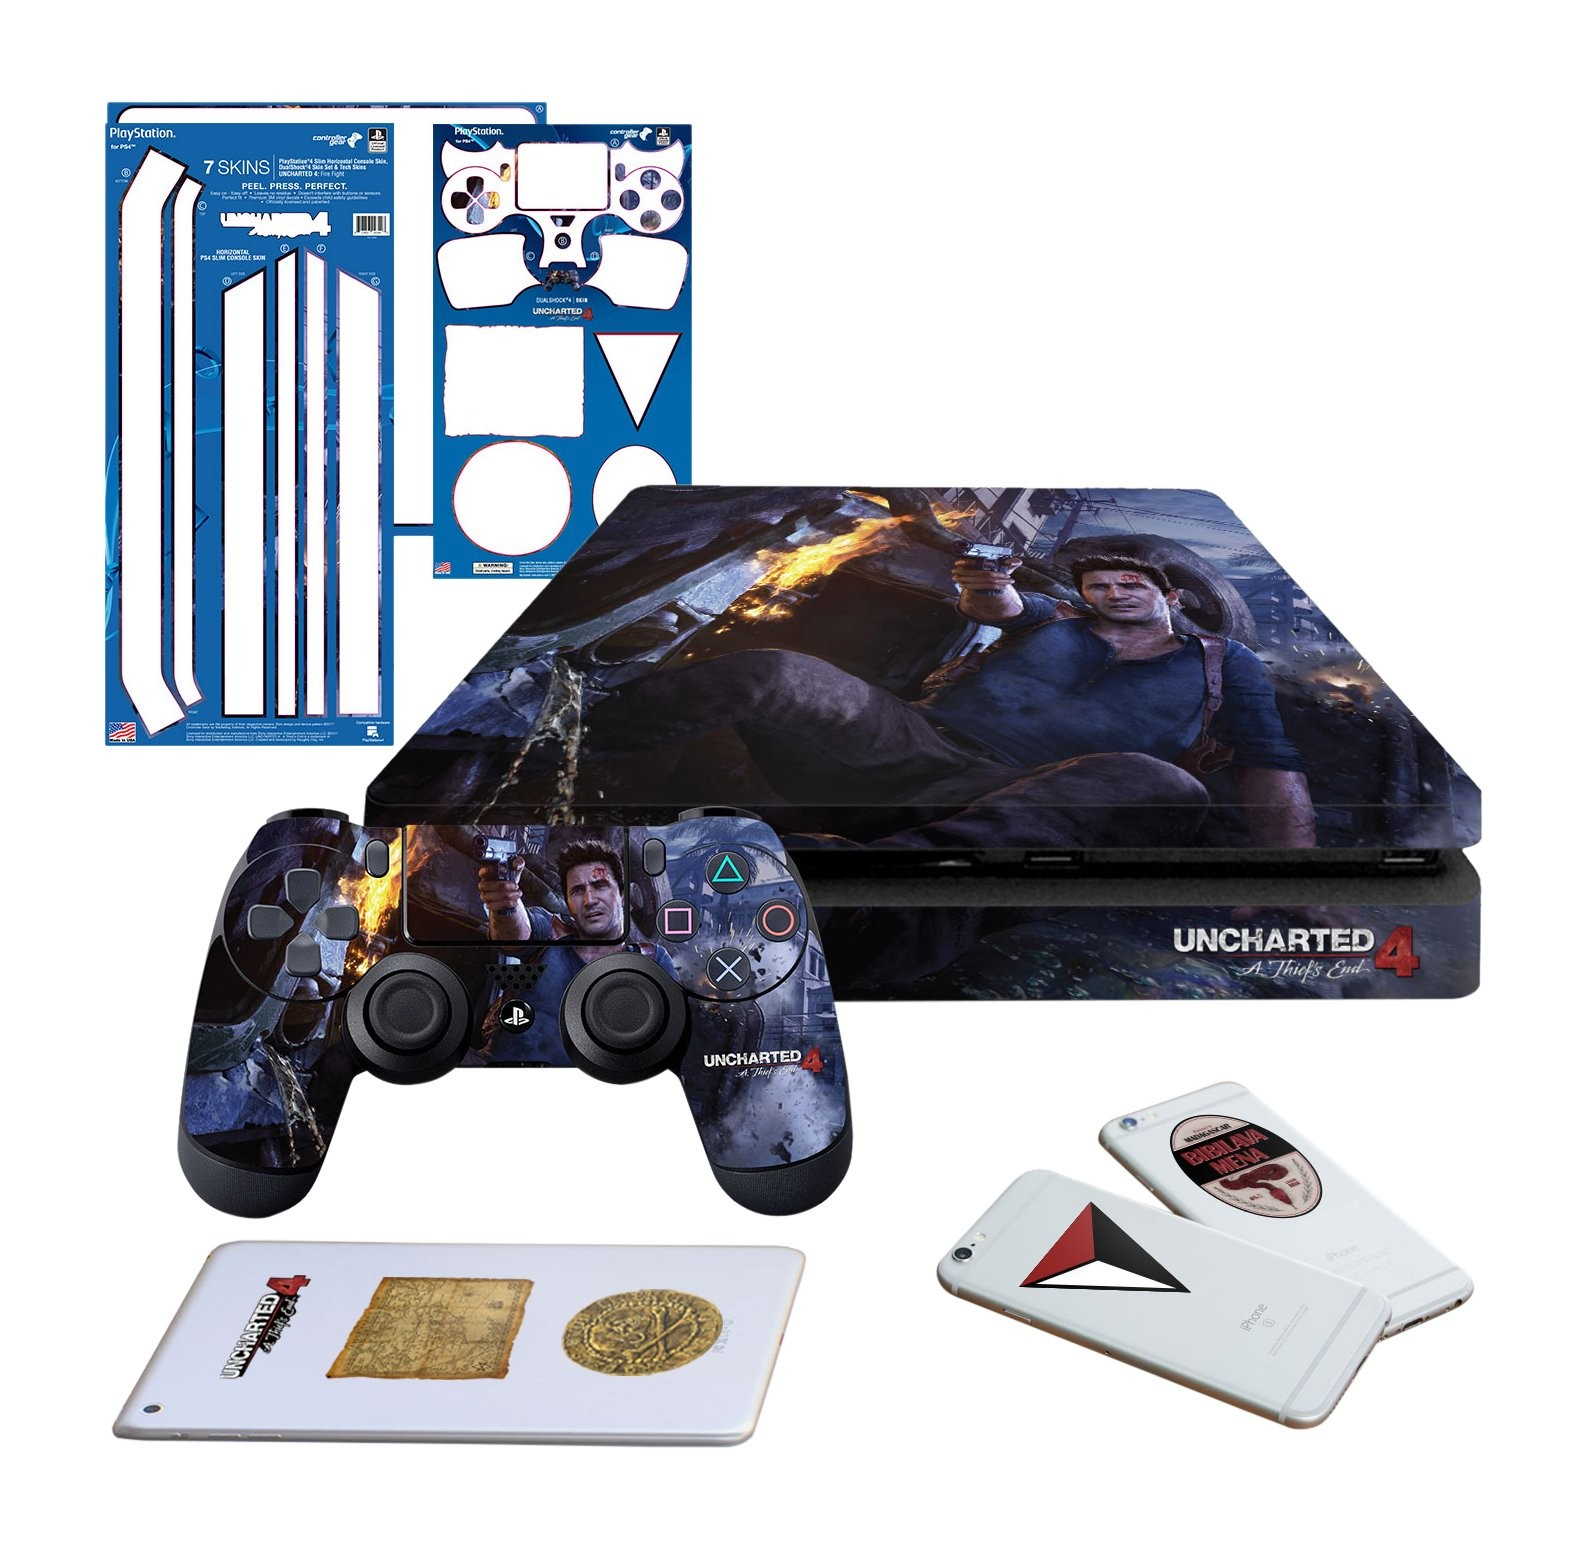 Uncharted 4 Fire Fight - PS4 SLIM Horizontal Console and Controller Gaming Skin Pack - Officially Licensed by PlayStation - Controller Gear